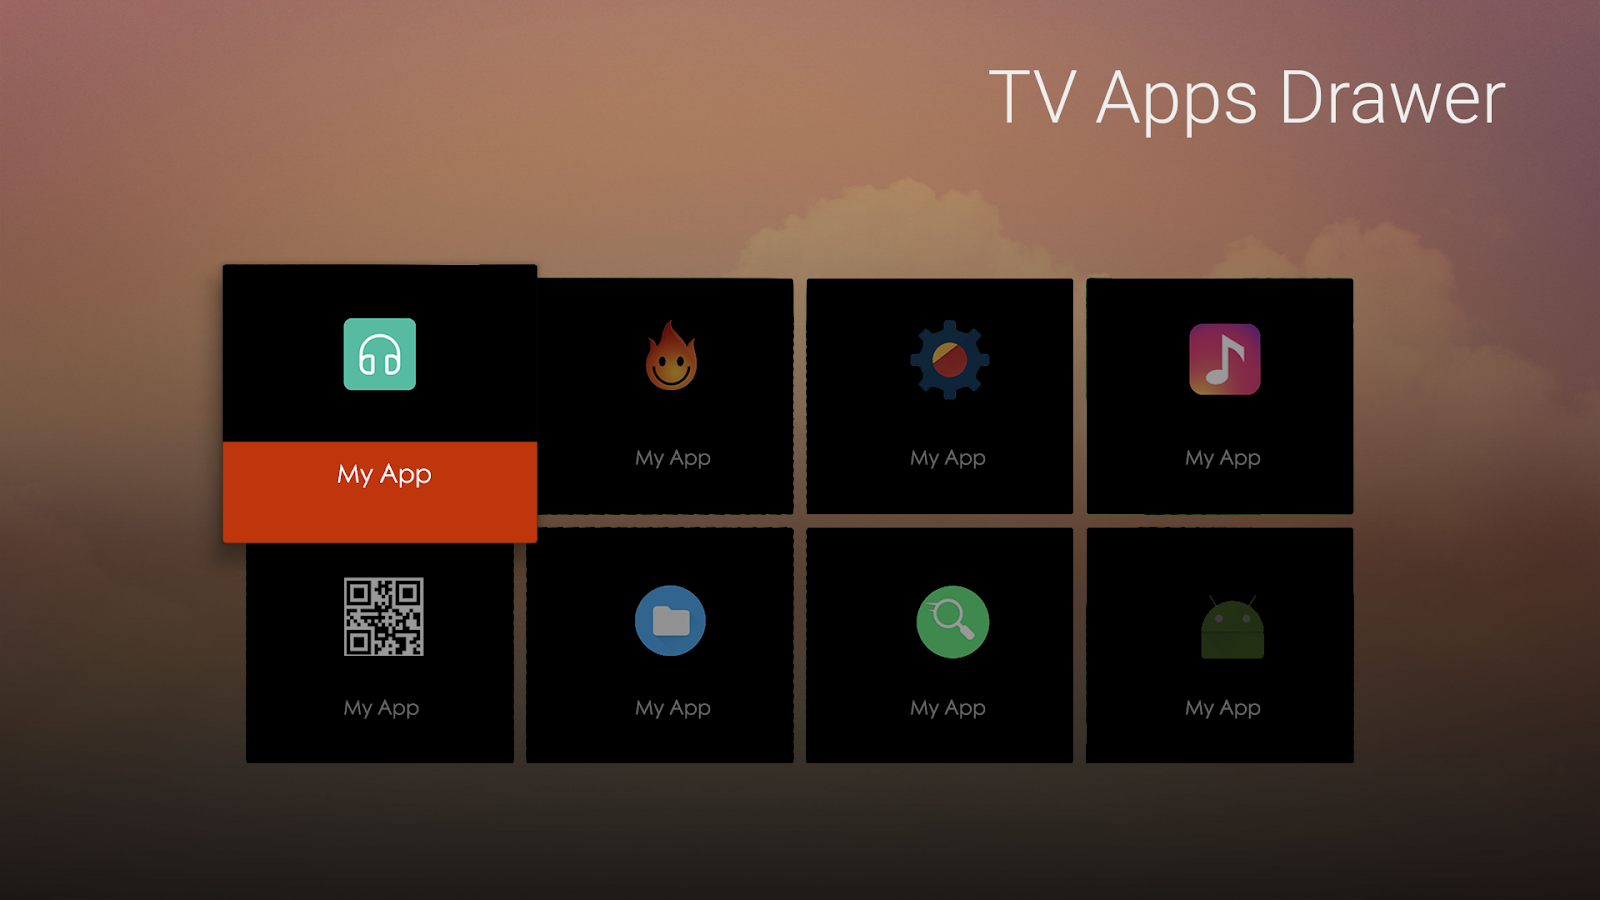 TV Apps Drawer 1 0 6 APK Download - Android Tools Apps